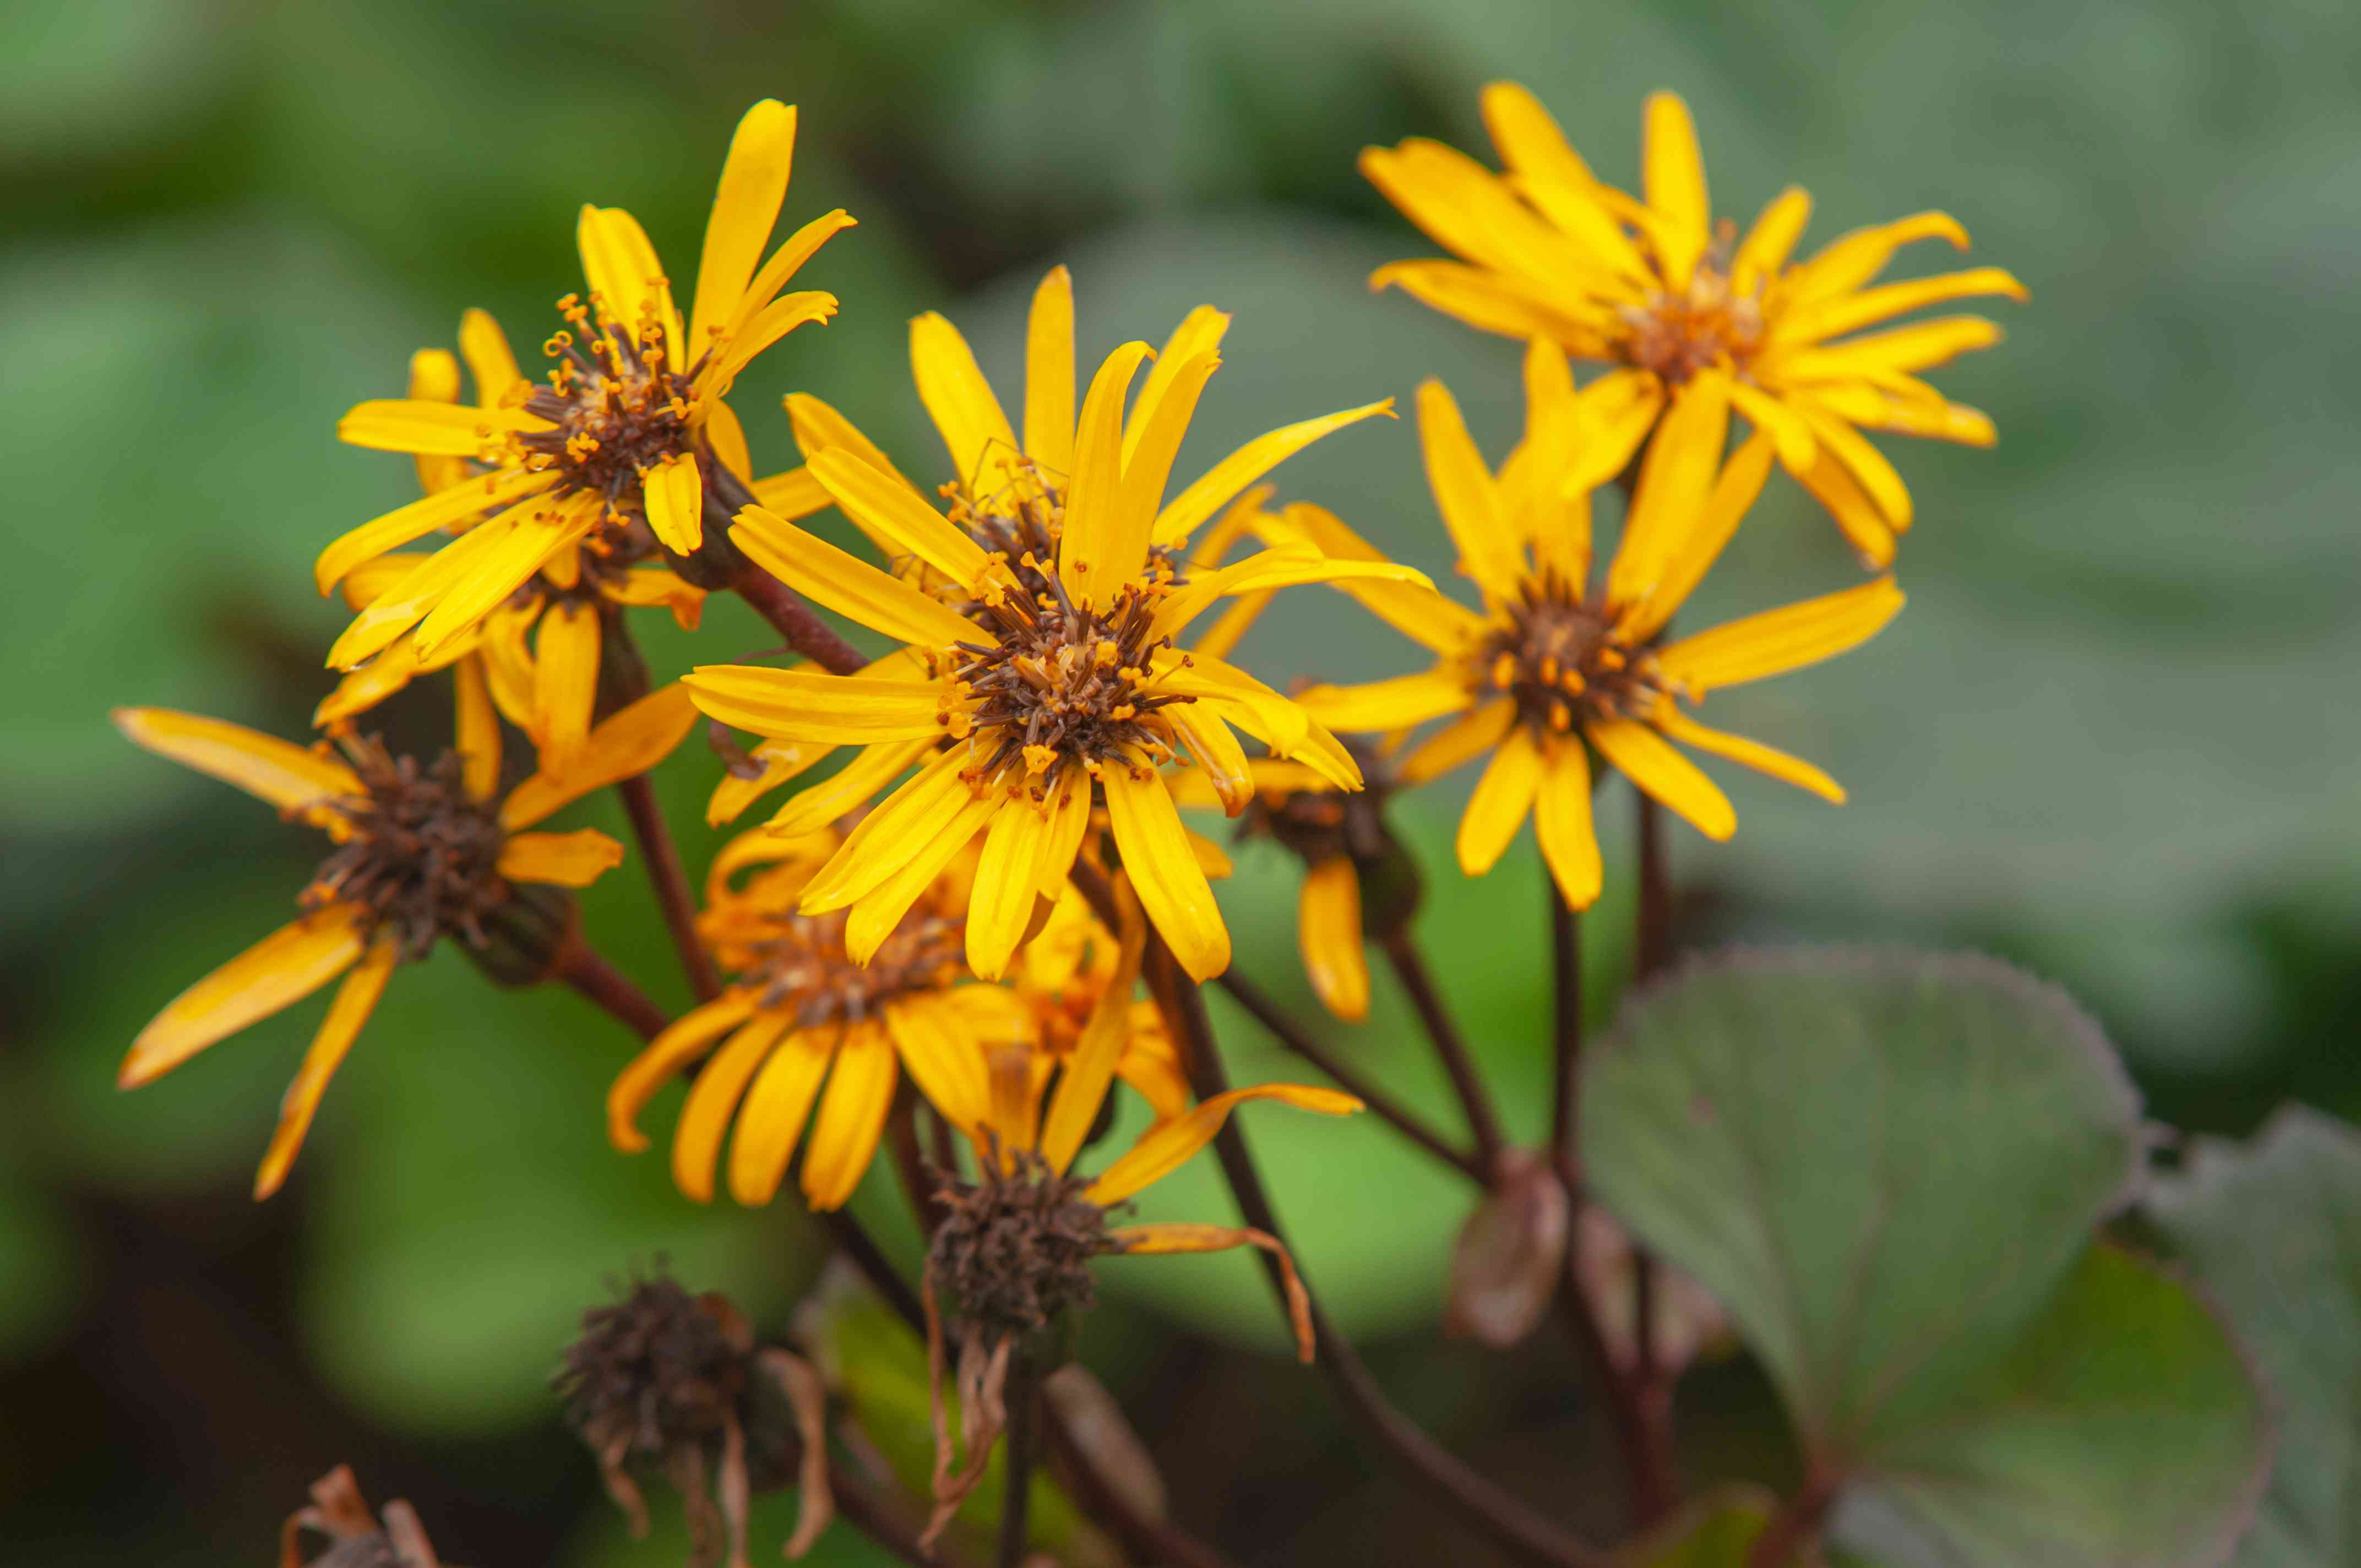 Leopard 'dentata' plant with radiating golden flower clusters on multi-stems closeup